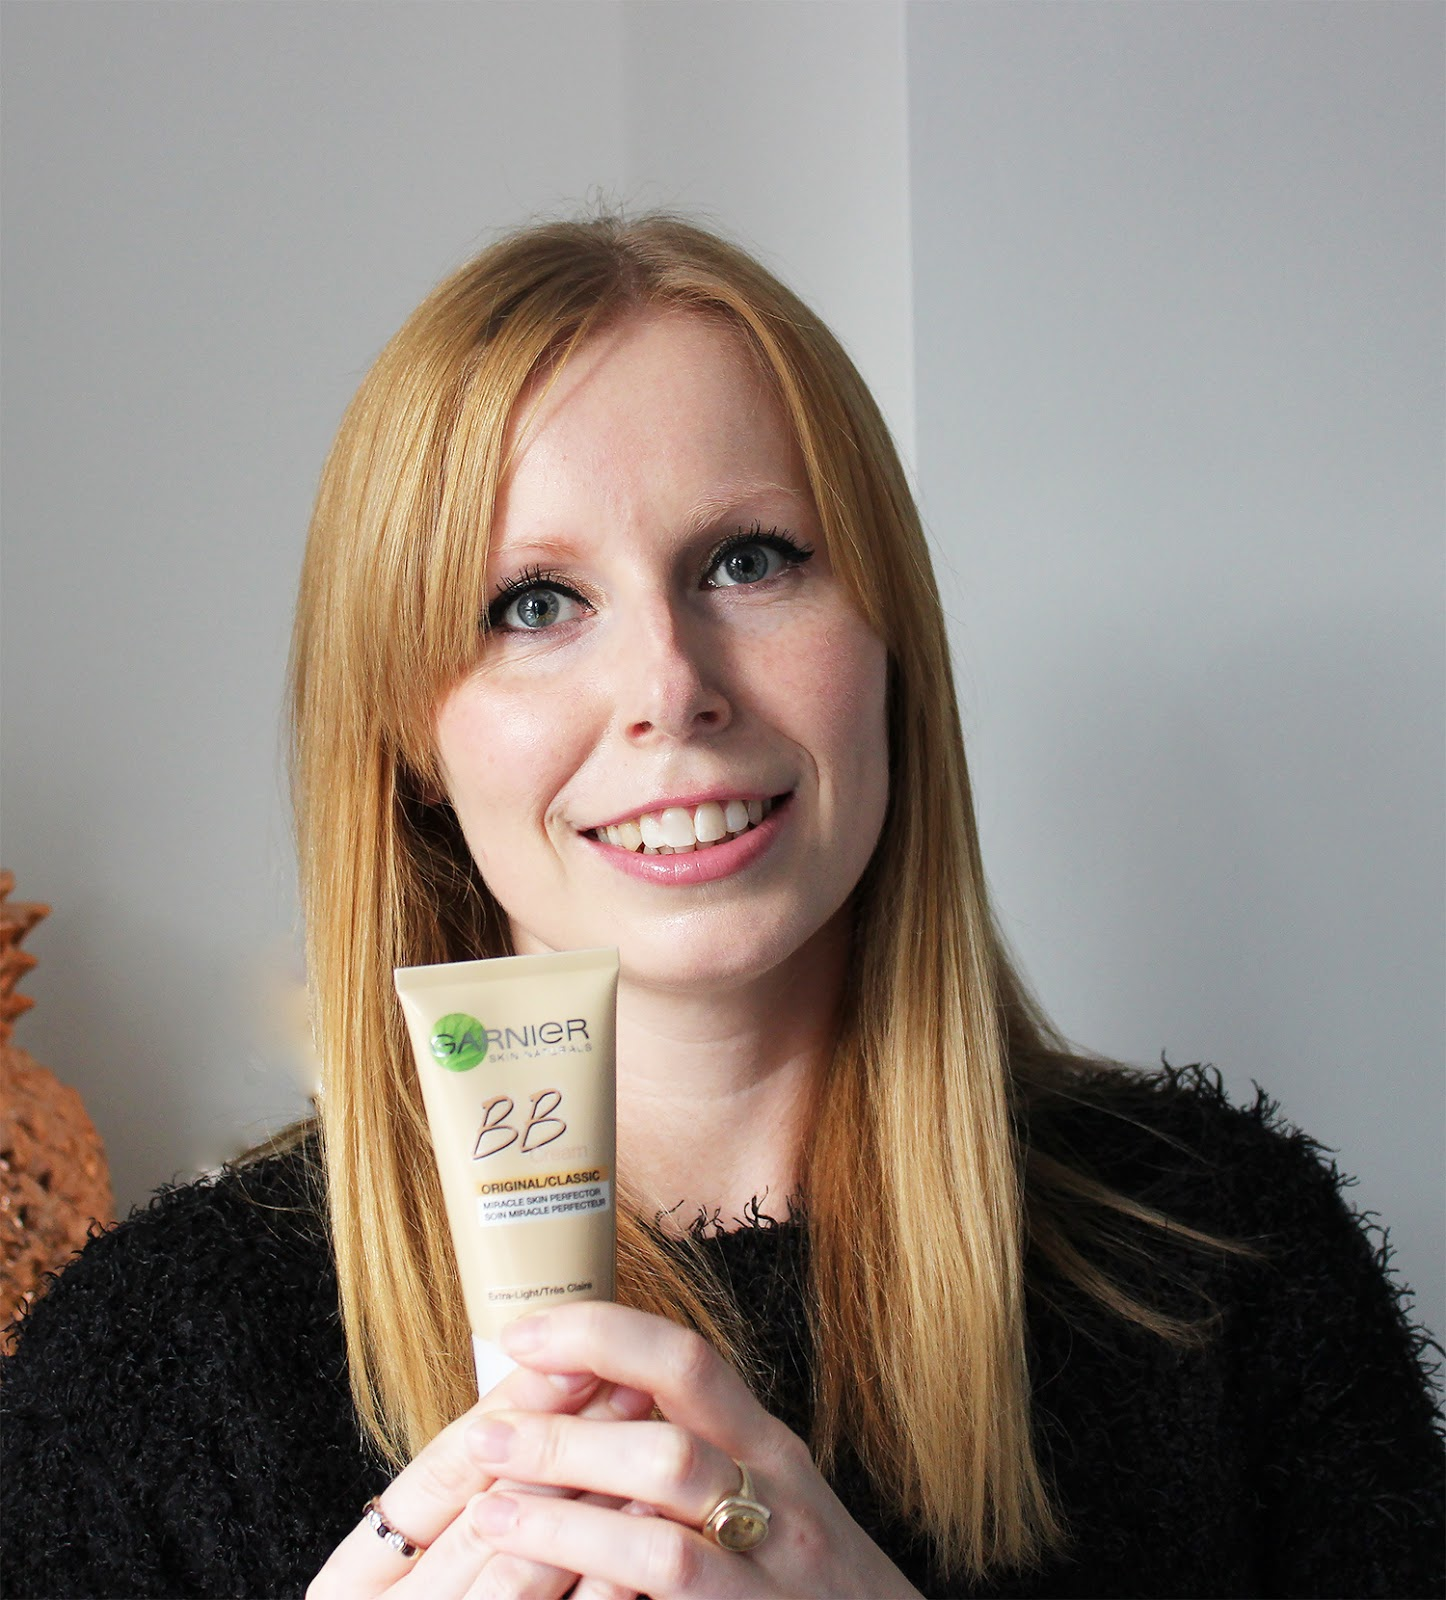 Garnier BB Cream Extra light reviewed by pale faced beauty blogger - shown on skin